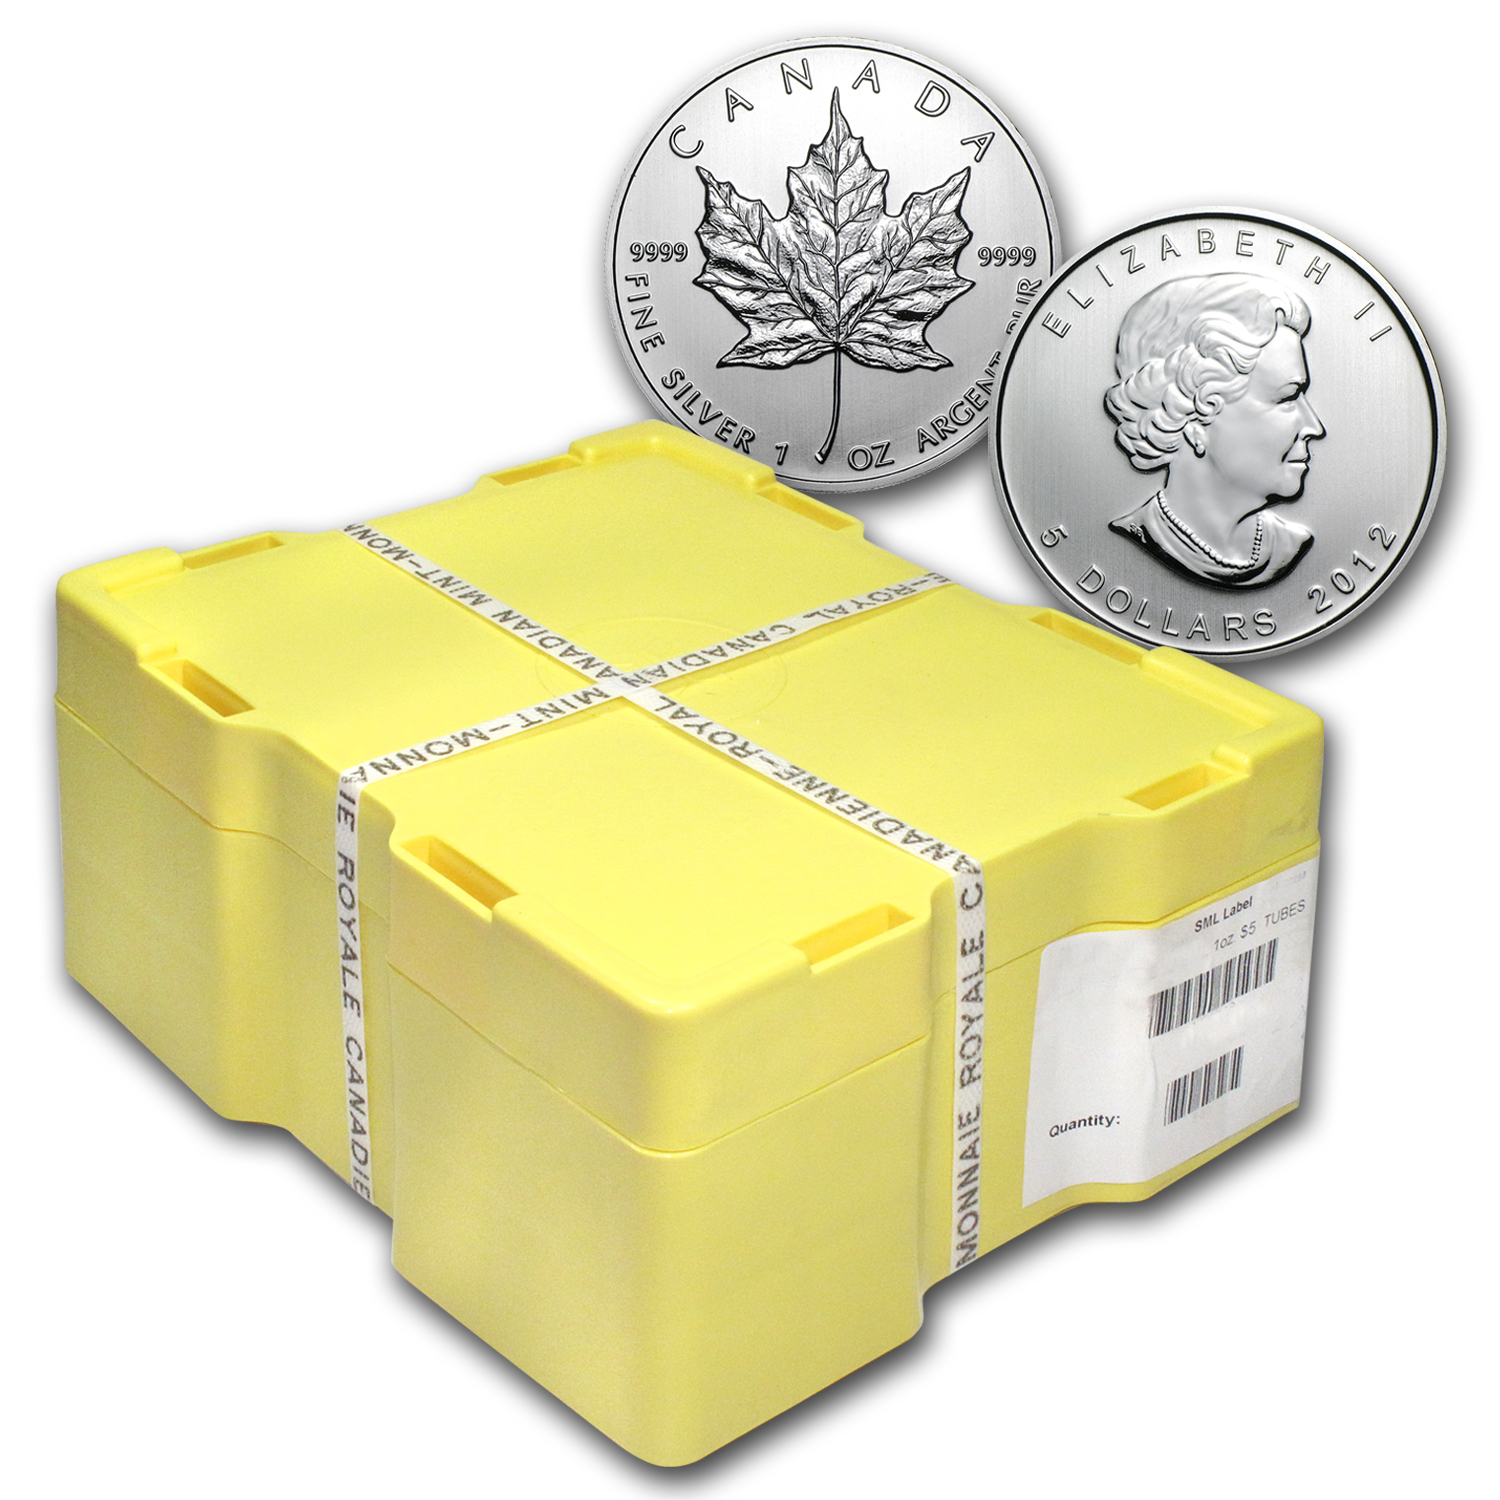 2012 Canada 500 Coin Silver Maple Leaf Monster Box Sealed